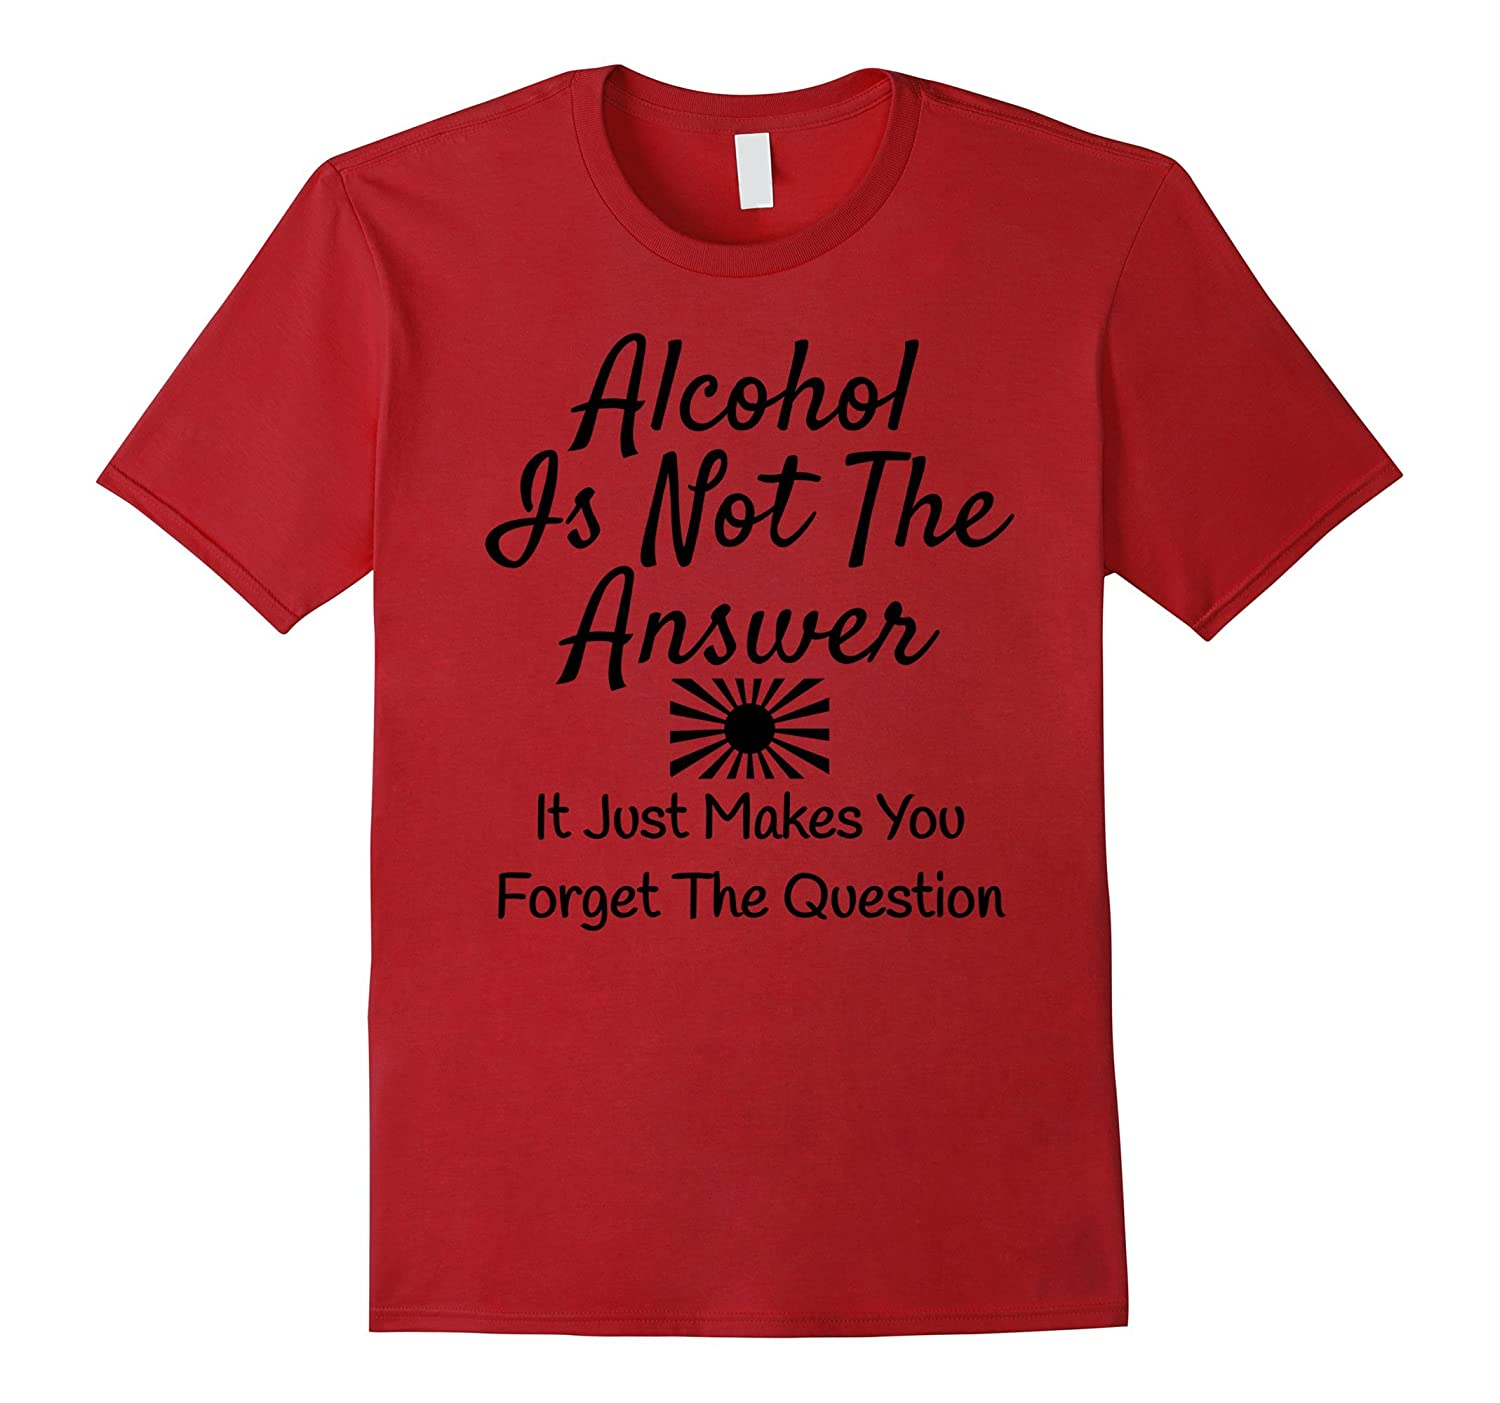 Alcohol Is Not The Answer Makes You To Forget The Question-TH